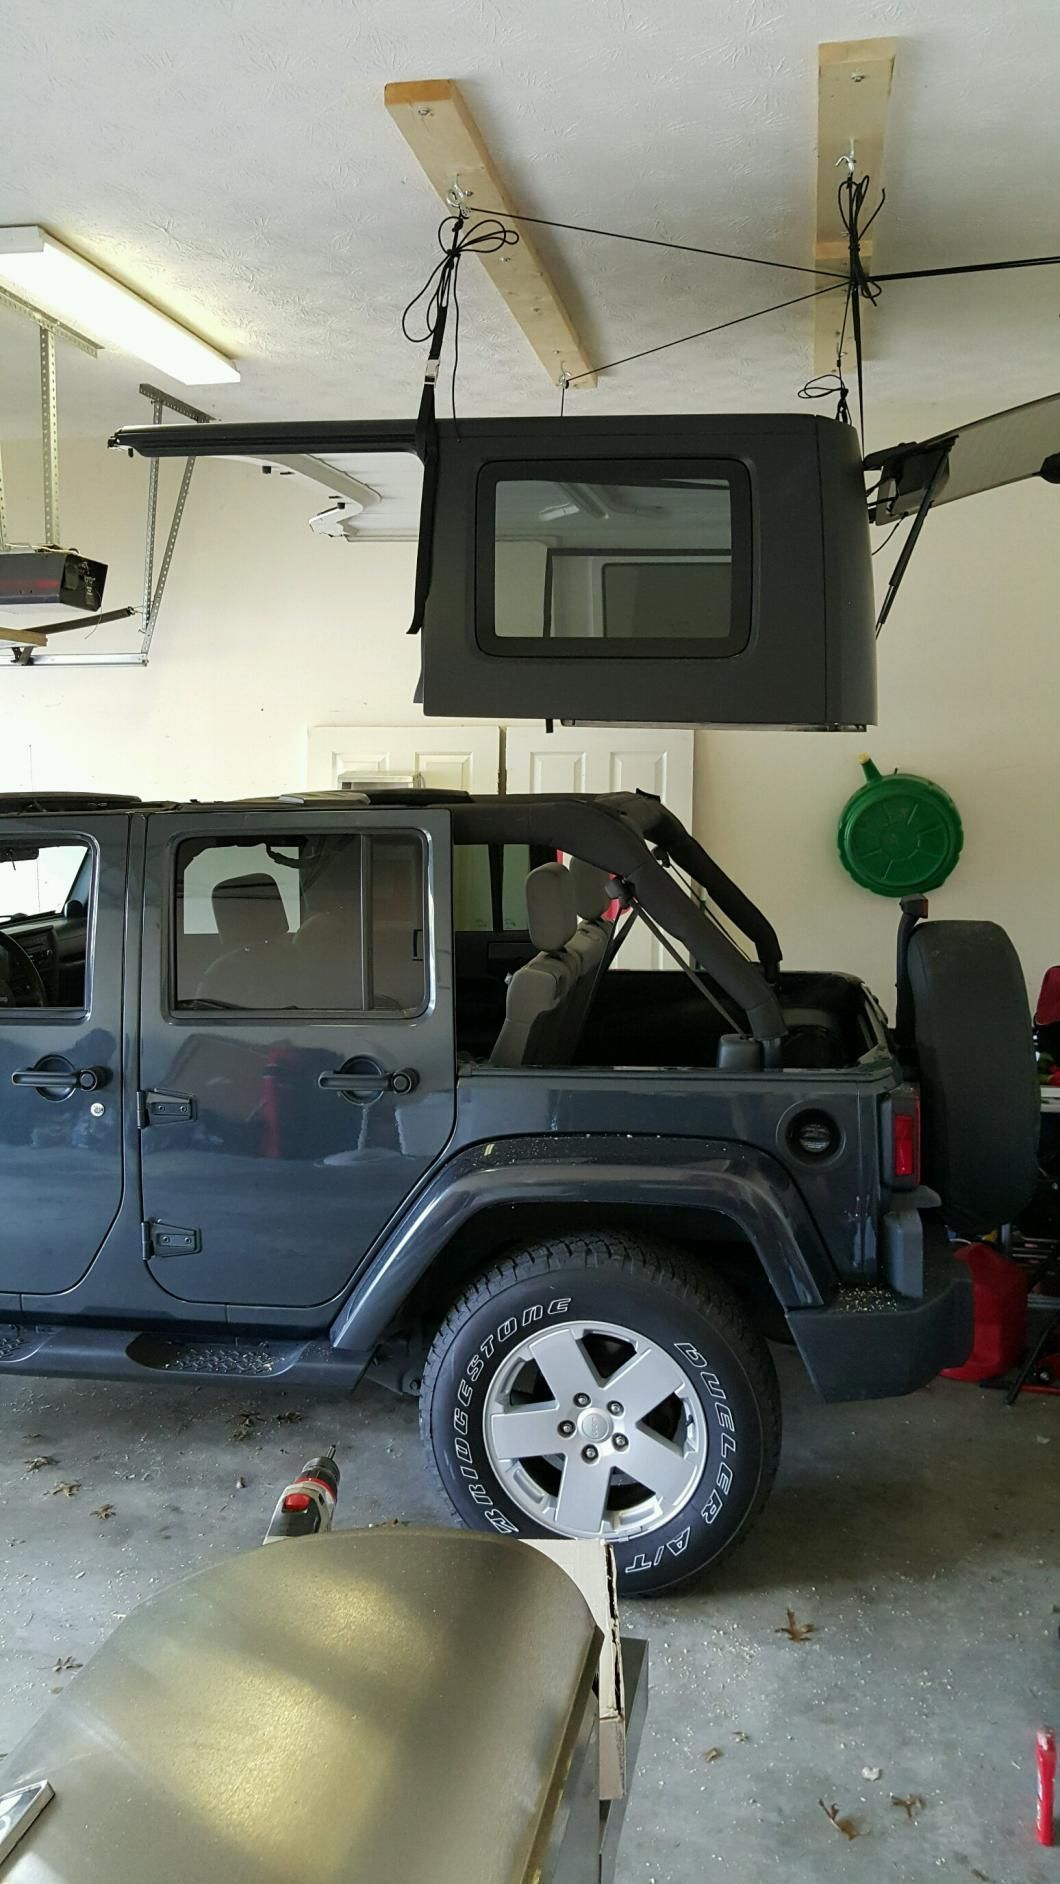 Pin By Gia Eisenlord On The Jeep Wrangler In 2020 Jeep Wrangler Jeep Garage Jeep Wrangler Tops